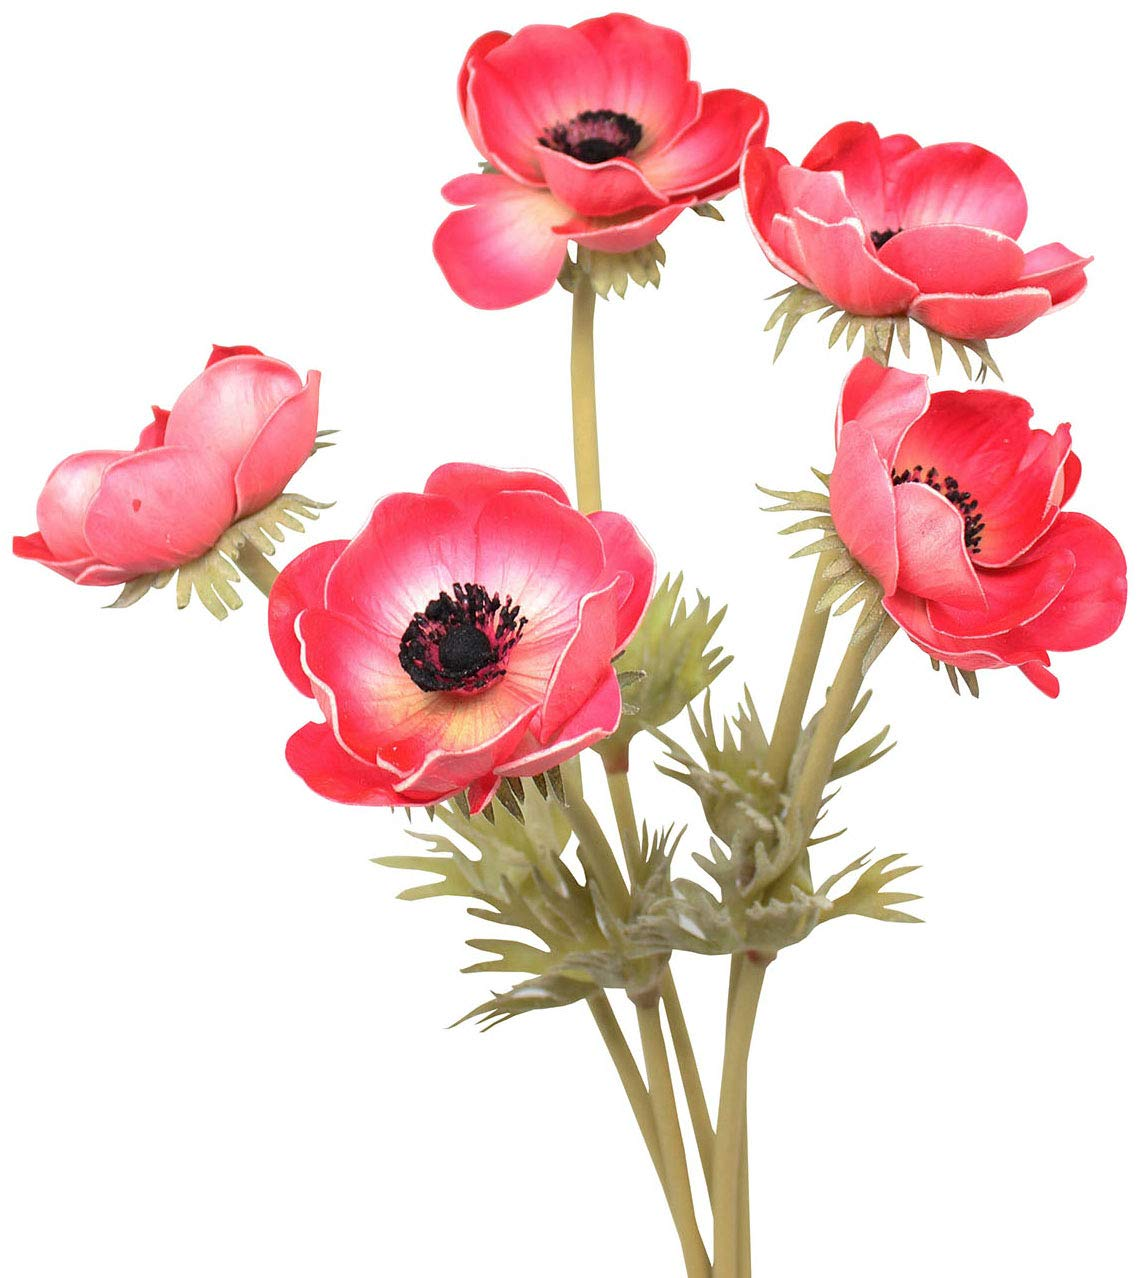 En-Ge-Rose-Anemone-Flowers-with-Long-Stems-Artificial-Flower-for-Home-Decor-DIY-Wedding-Bouquet